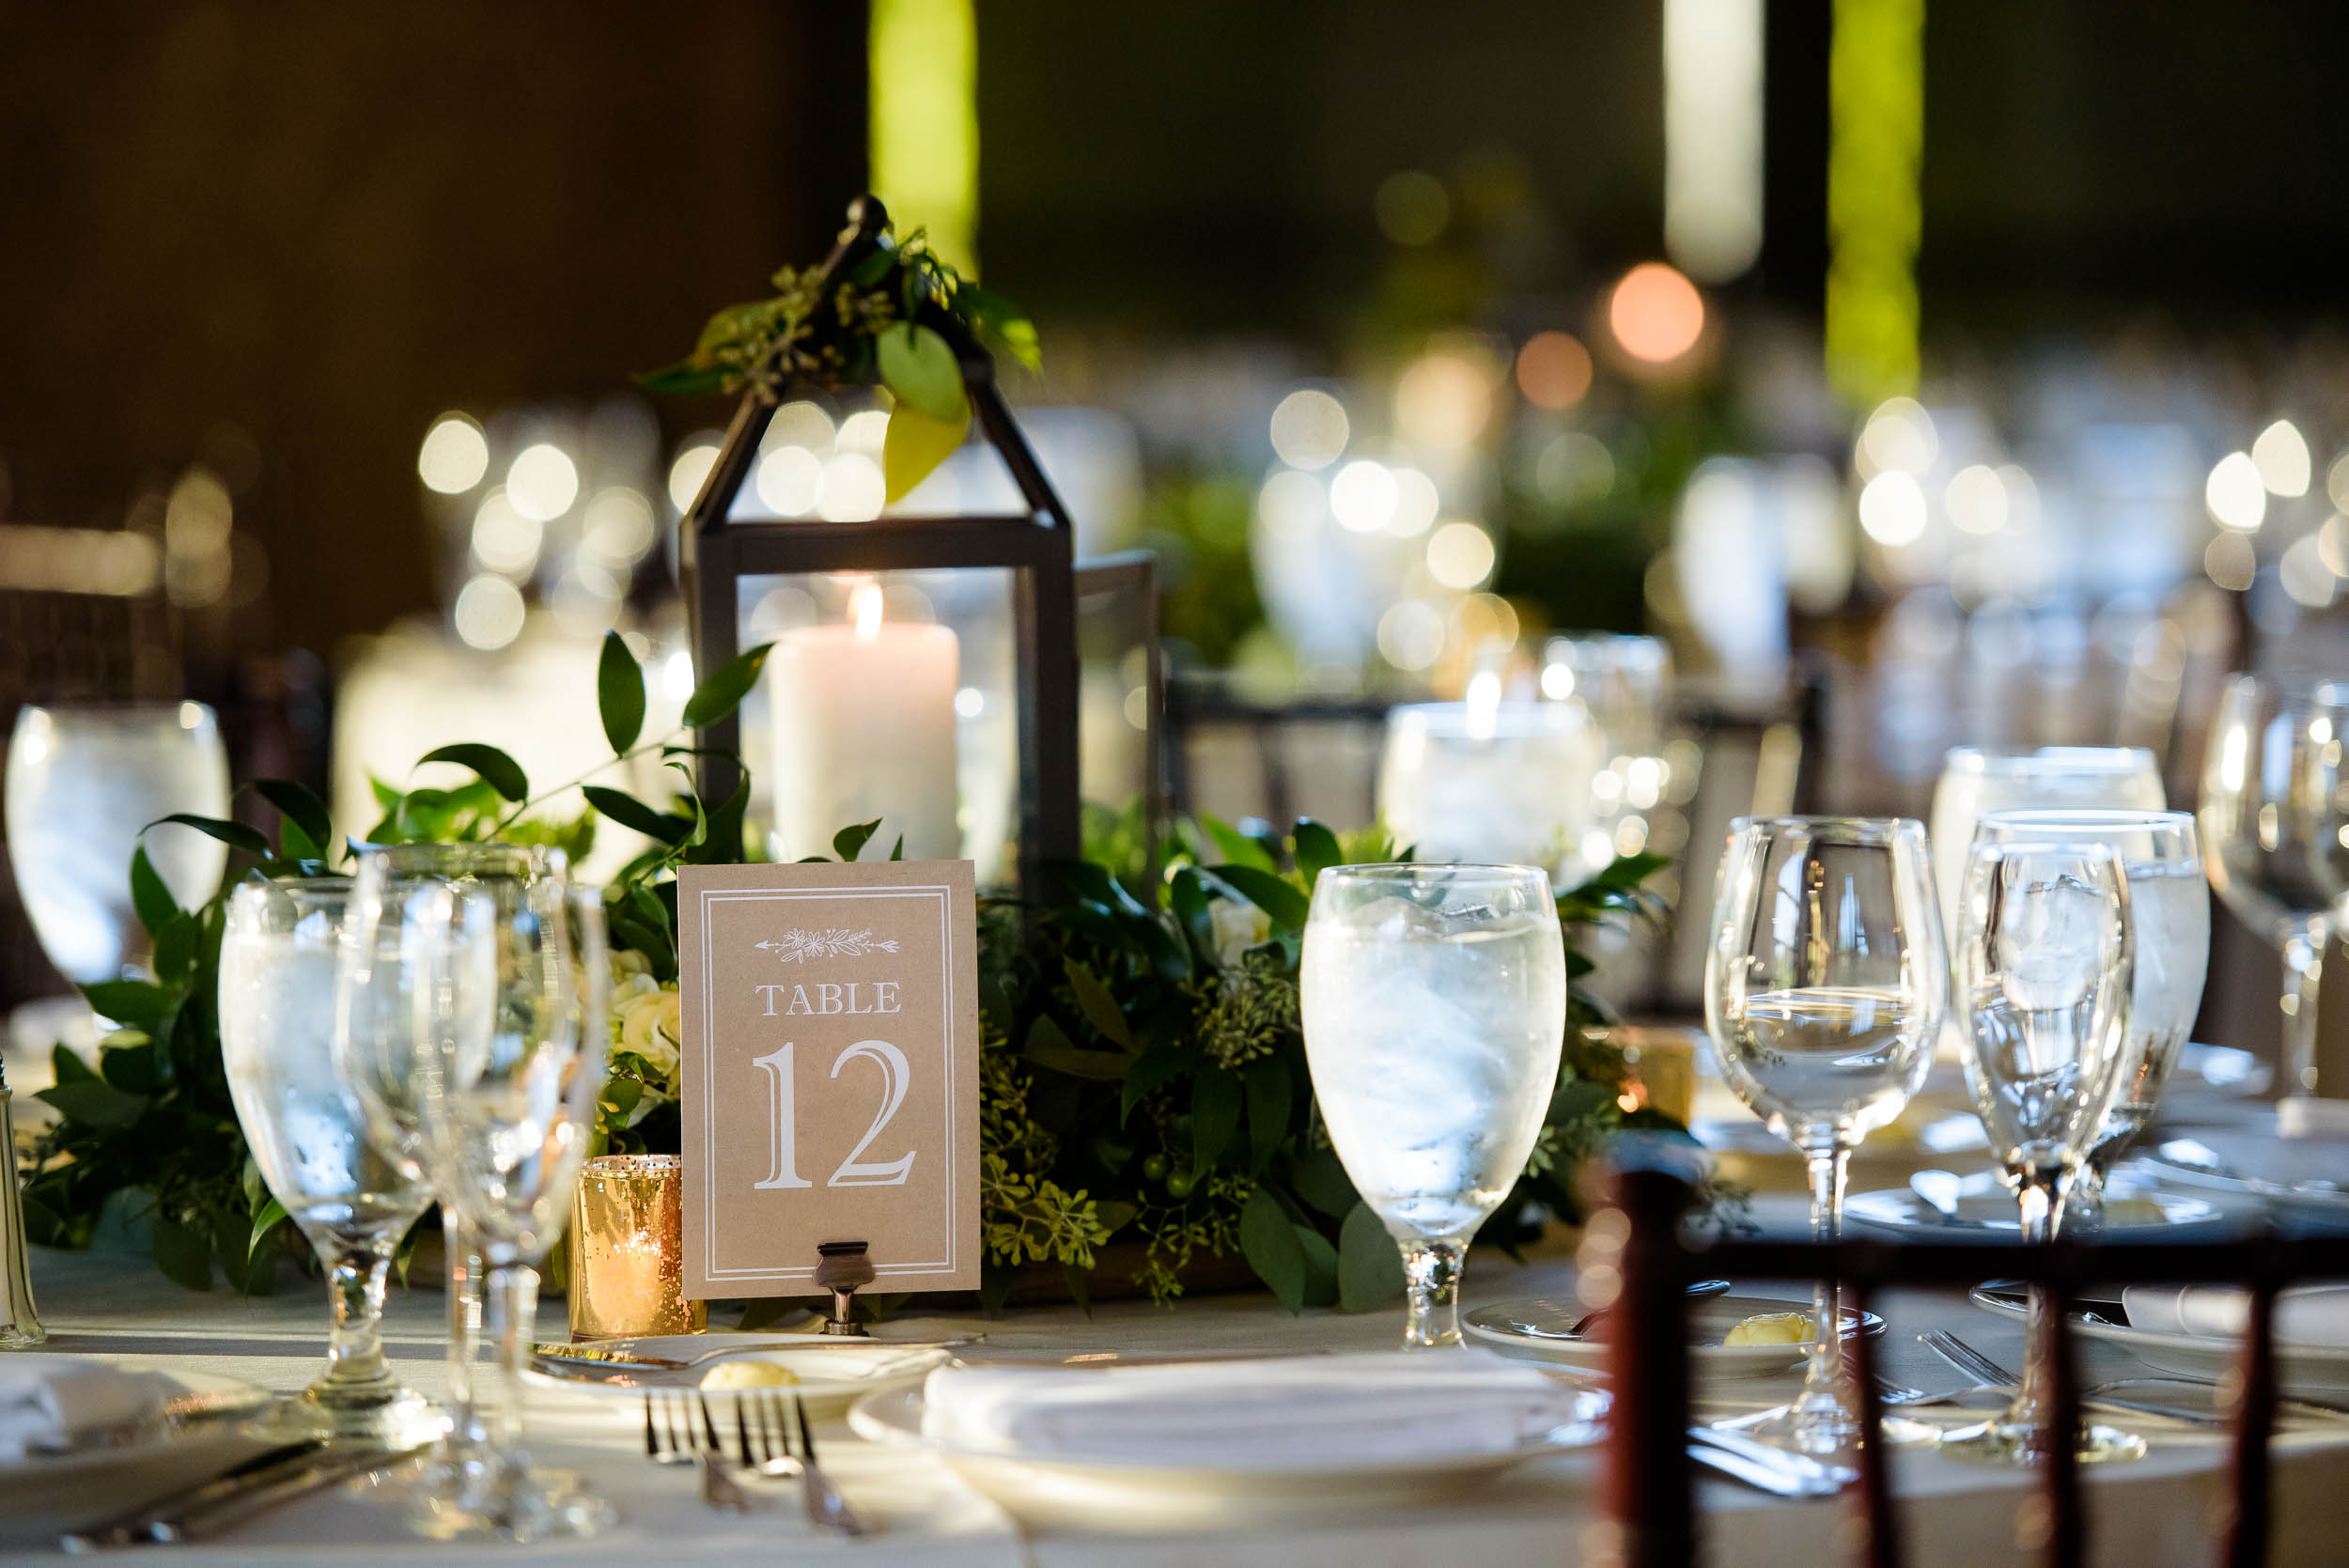 Wedding centerpieces and table decor for Grand Geneve Resort Fall Chicago Wedding captured by J. Brown Photography. Visit jbrownphotography.com for more wedding inspiration!